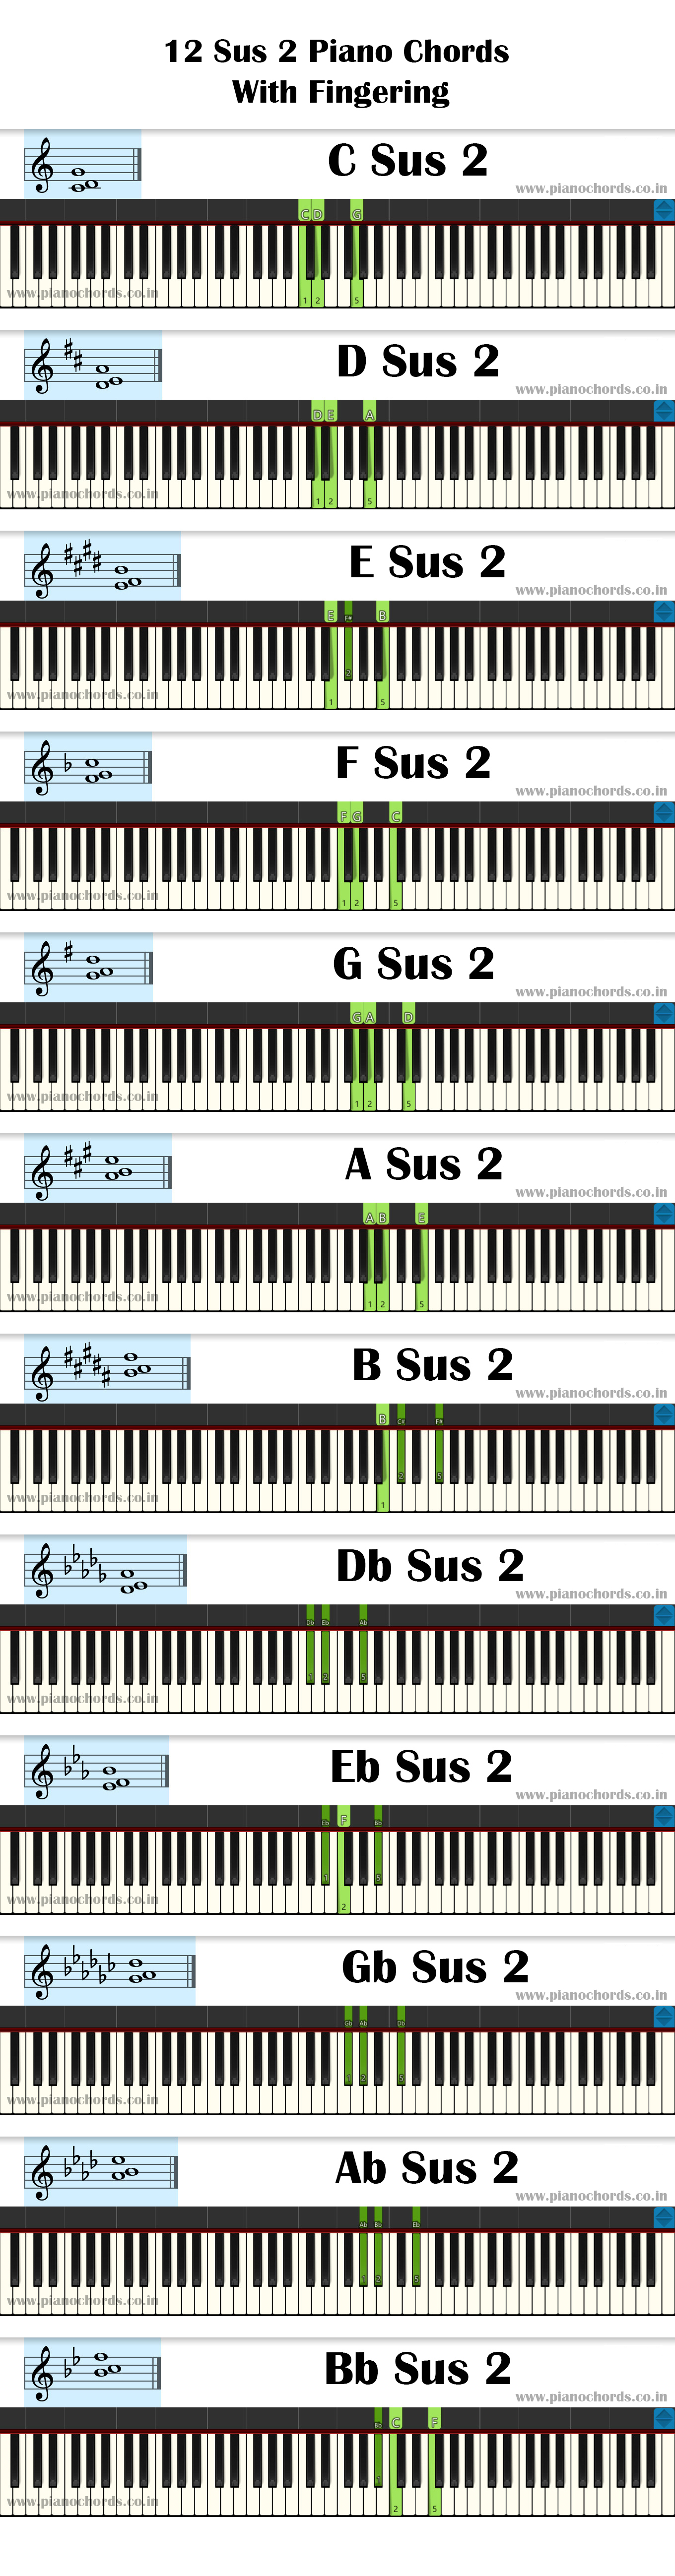 12 Sus 2 Piano Chords With Fingering, Diagram, Staff Notation